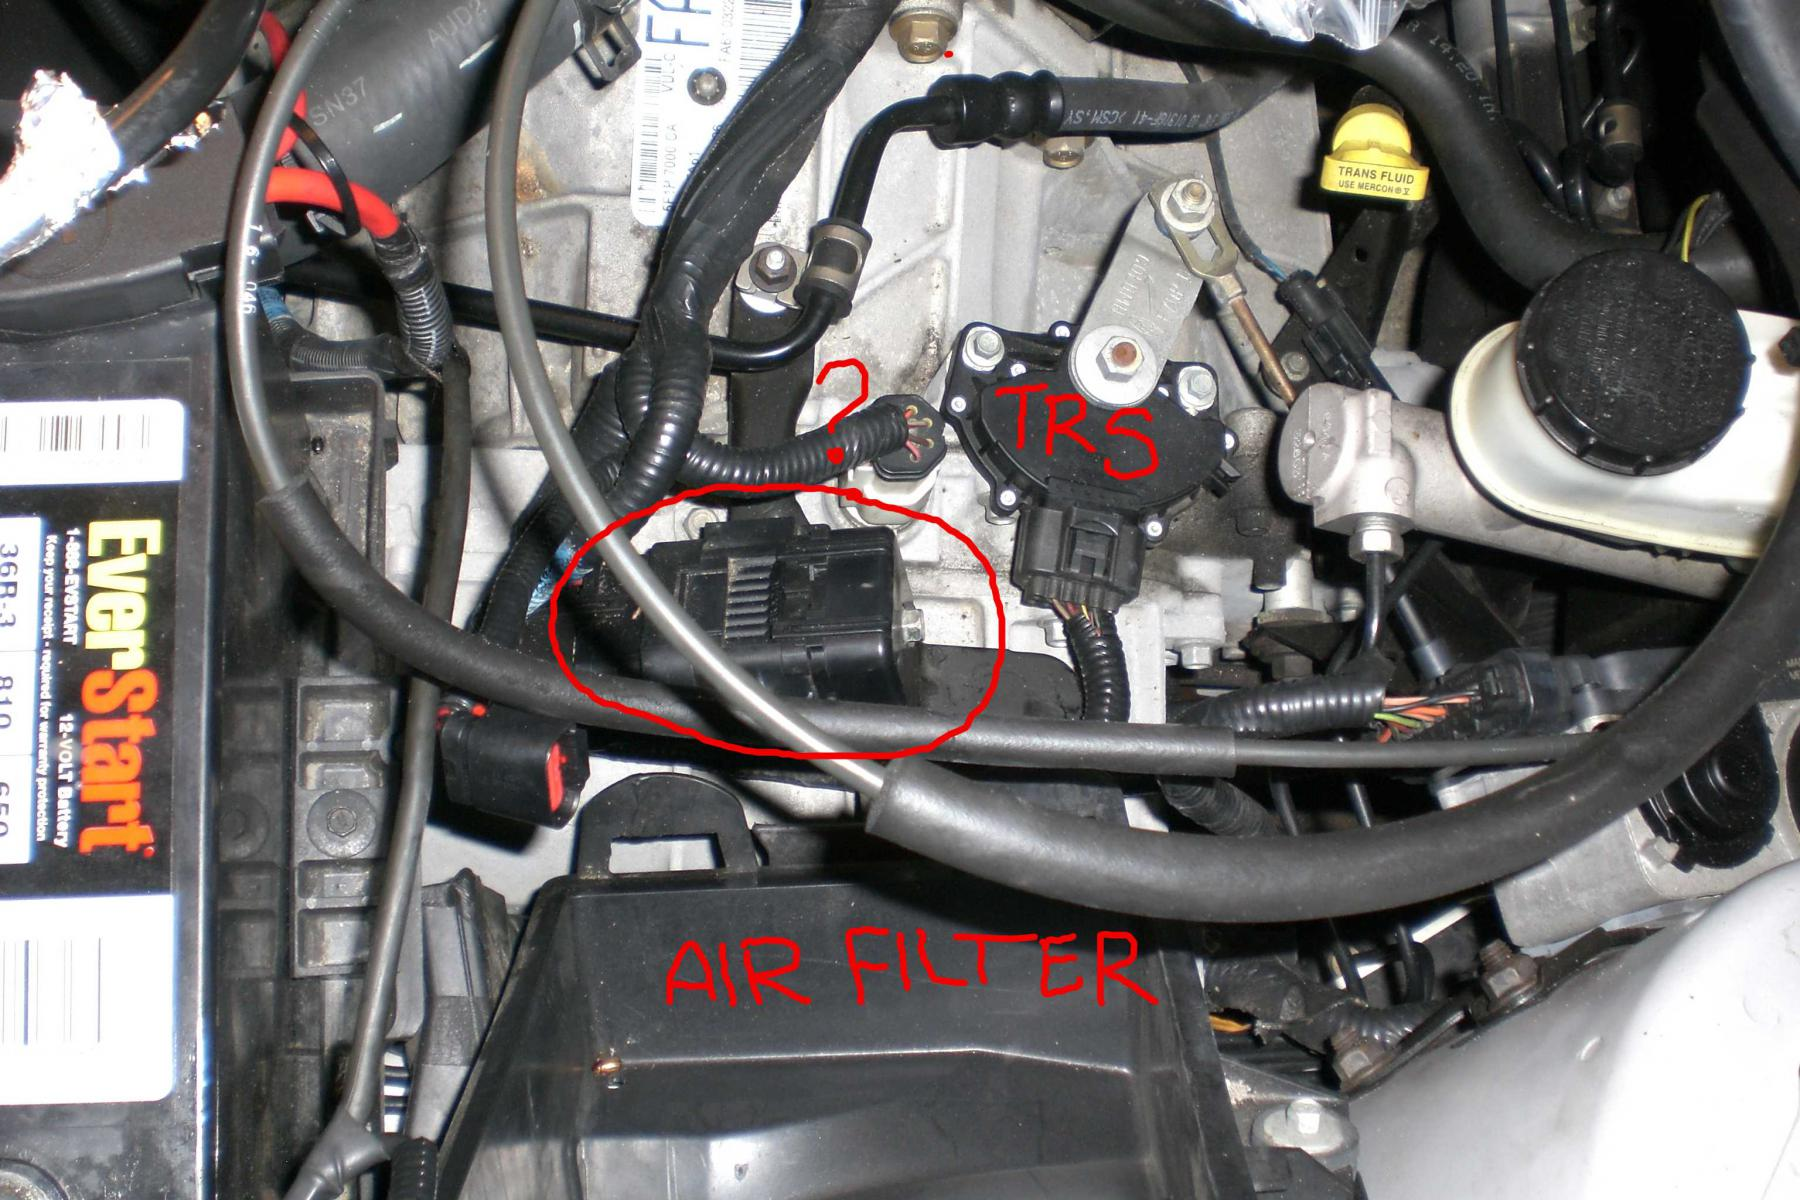 Ignition Coil Wiring Diagram Ford Focus Starting Know About 2001 Fuse Box Layout Taurus Wont Start 2018 2019 Reviews